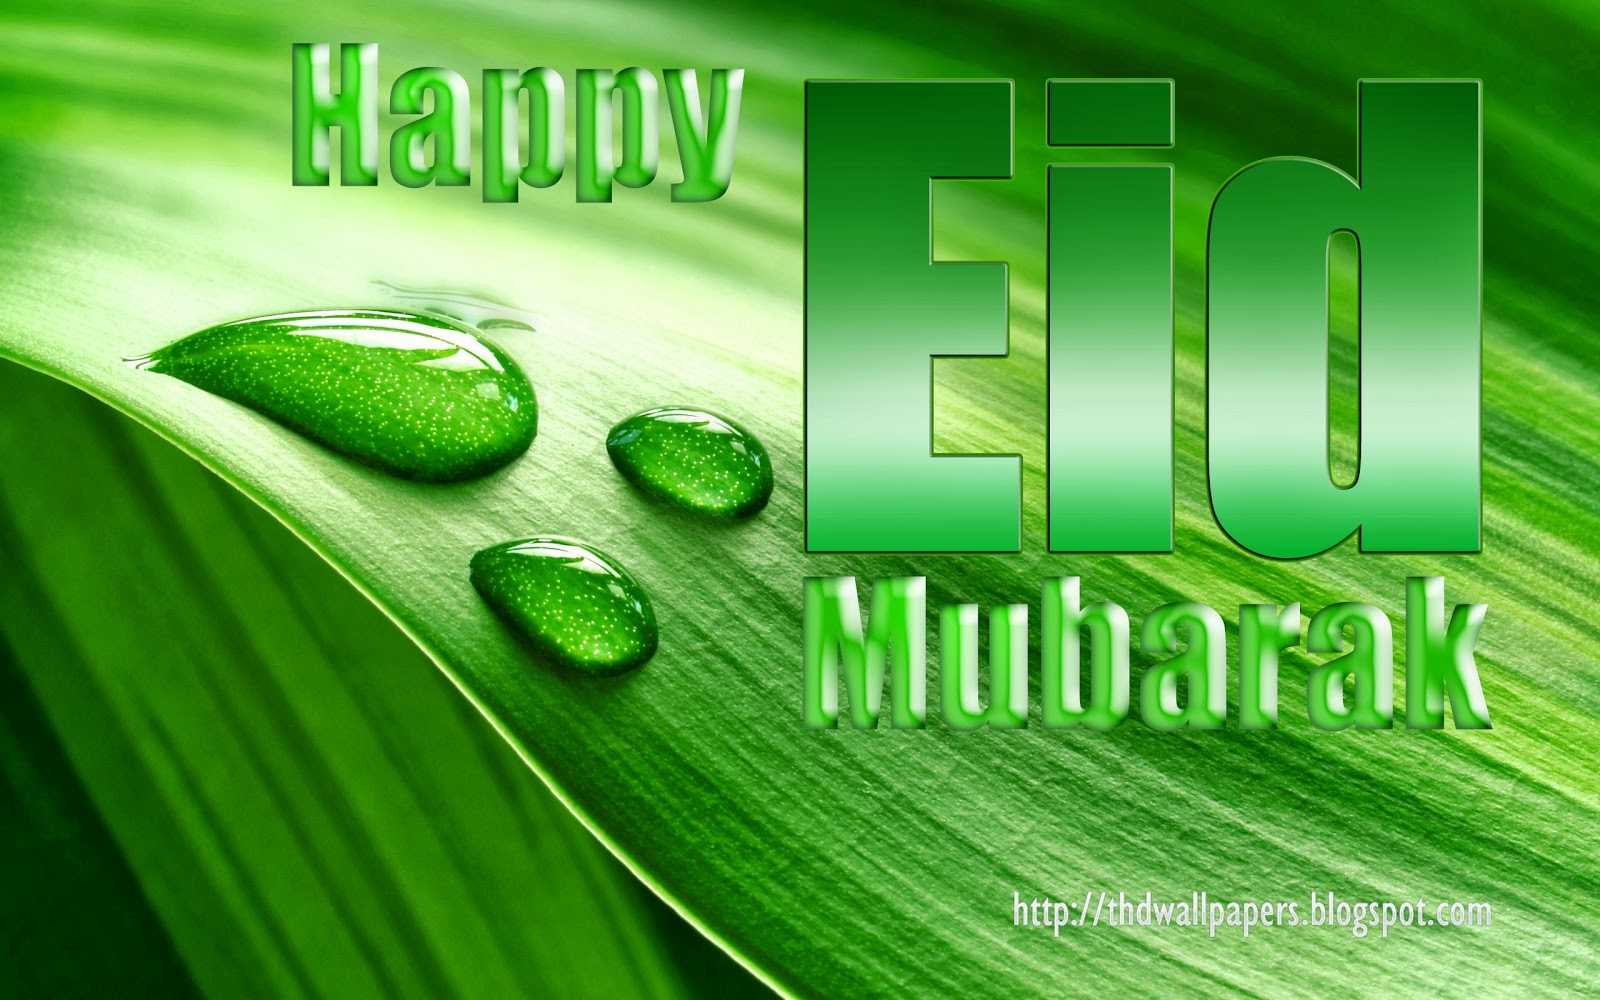 new year mes 2013 12 28 eid mubarak happy christian best free new year. 1600 x 1000.Thanksgiving New Year Greetings Message Sample